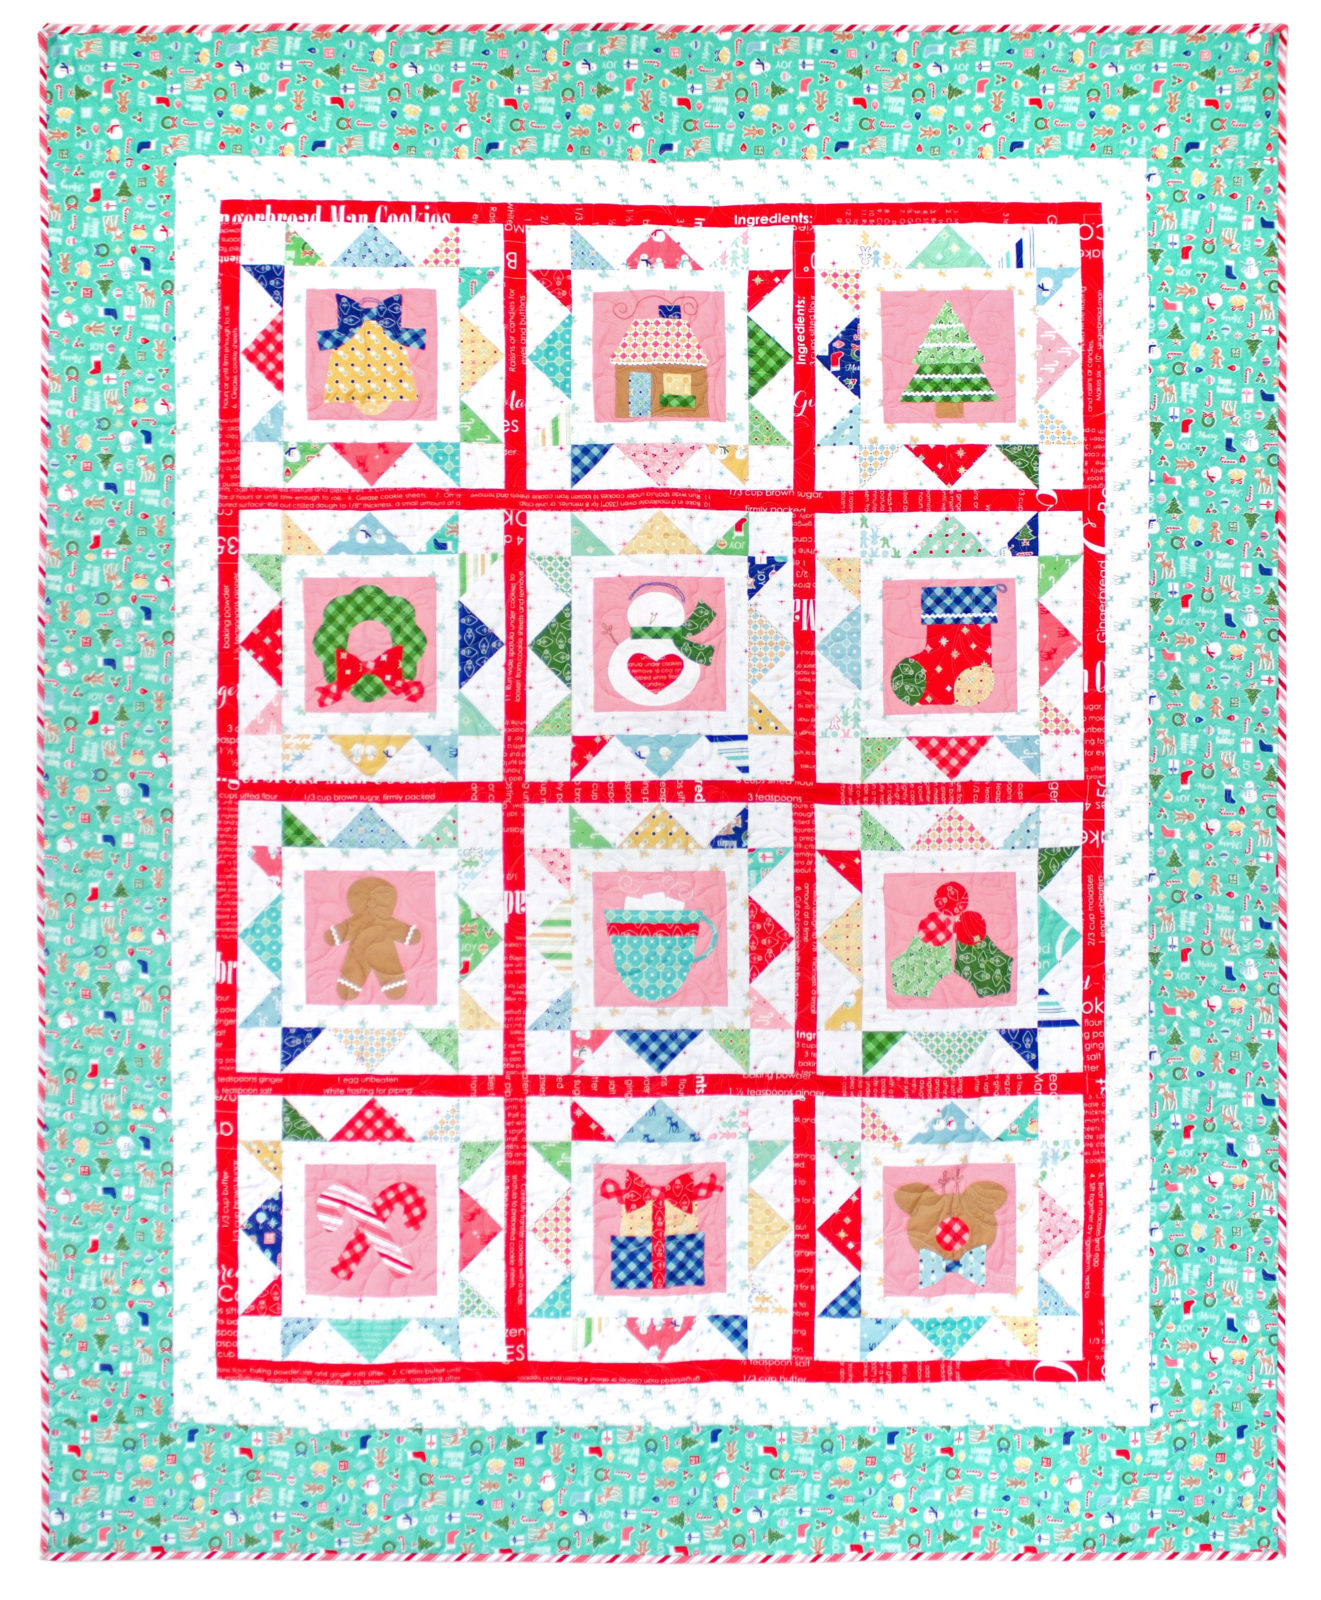 Christmas Quilting Patterns Free : Cozy Christmas Tree Block Lori Holt Stitches Quilting